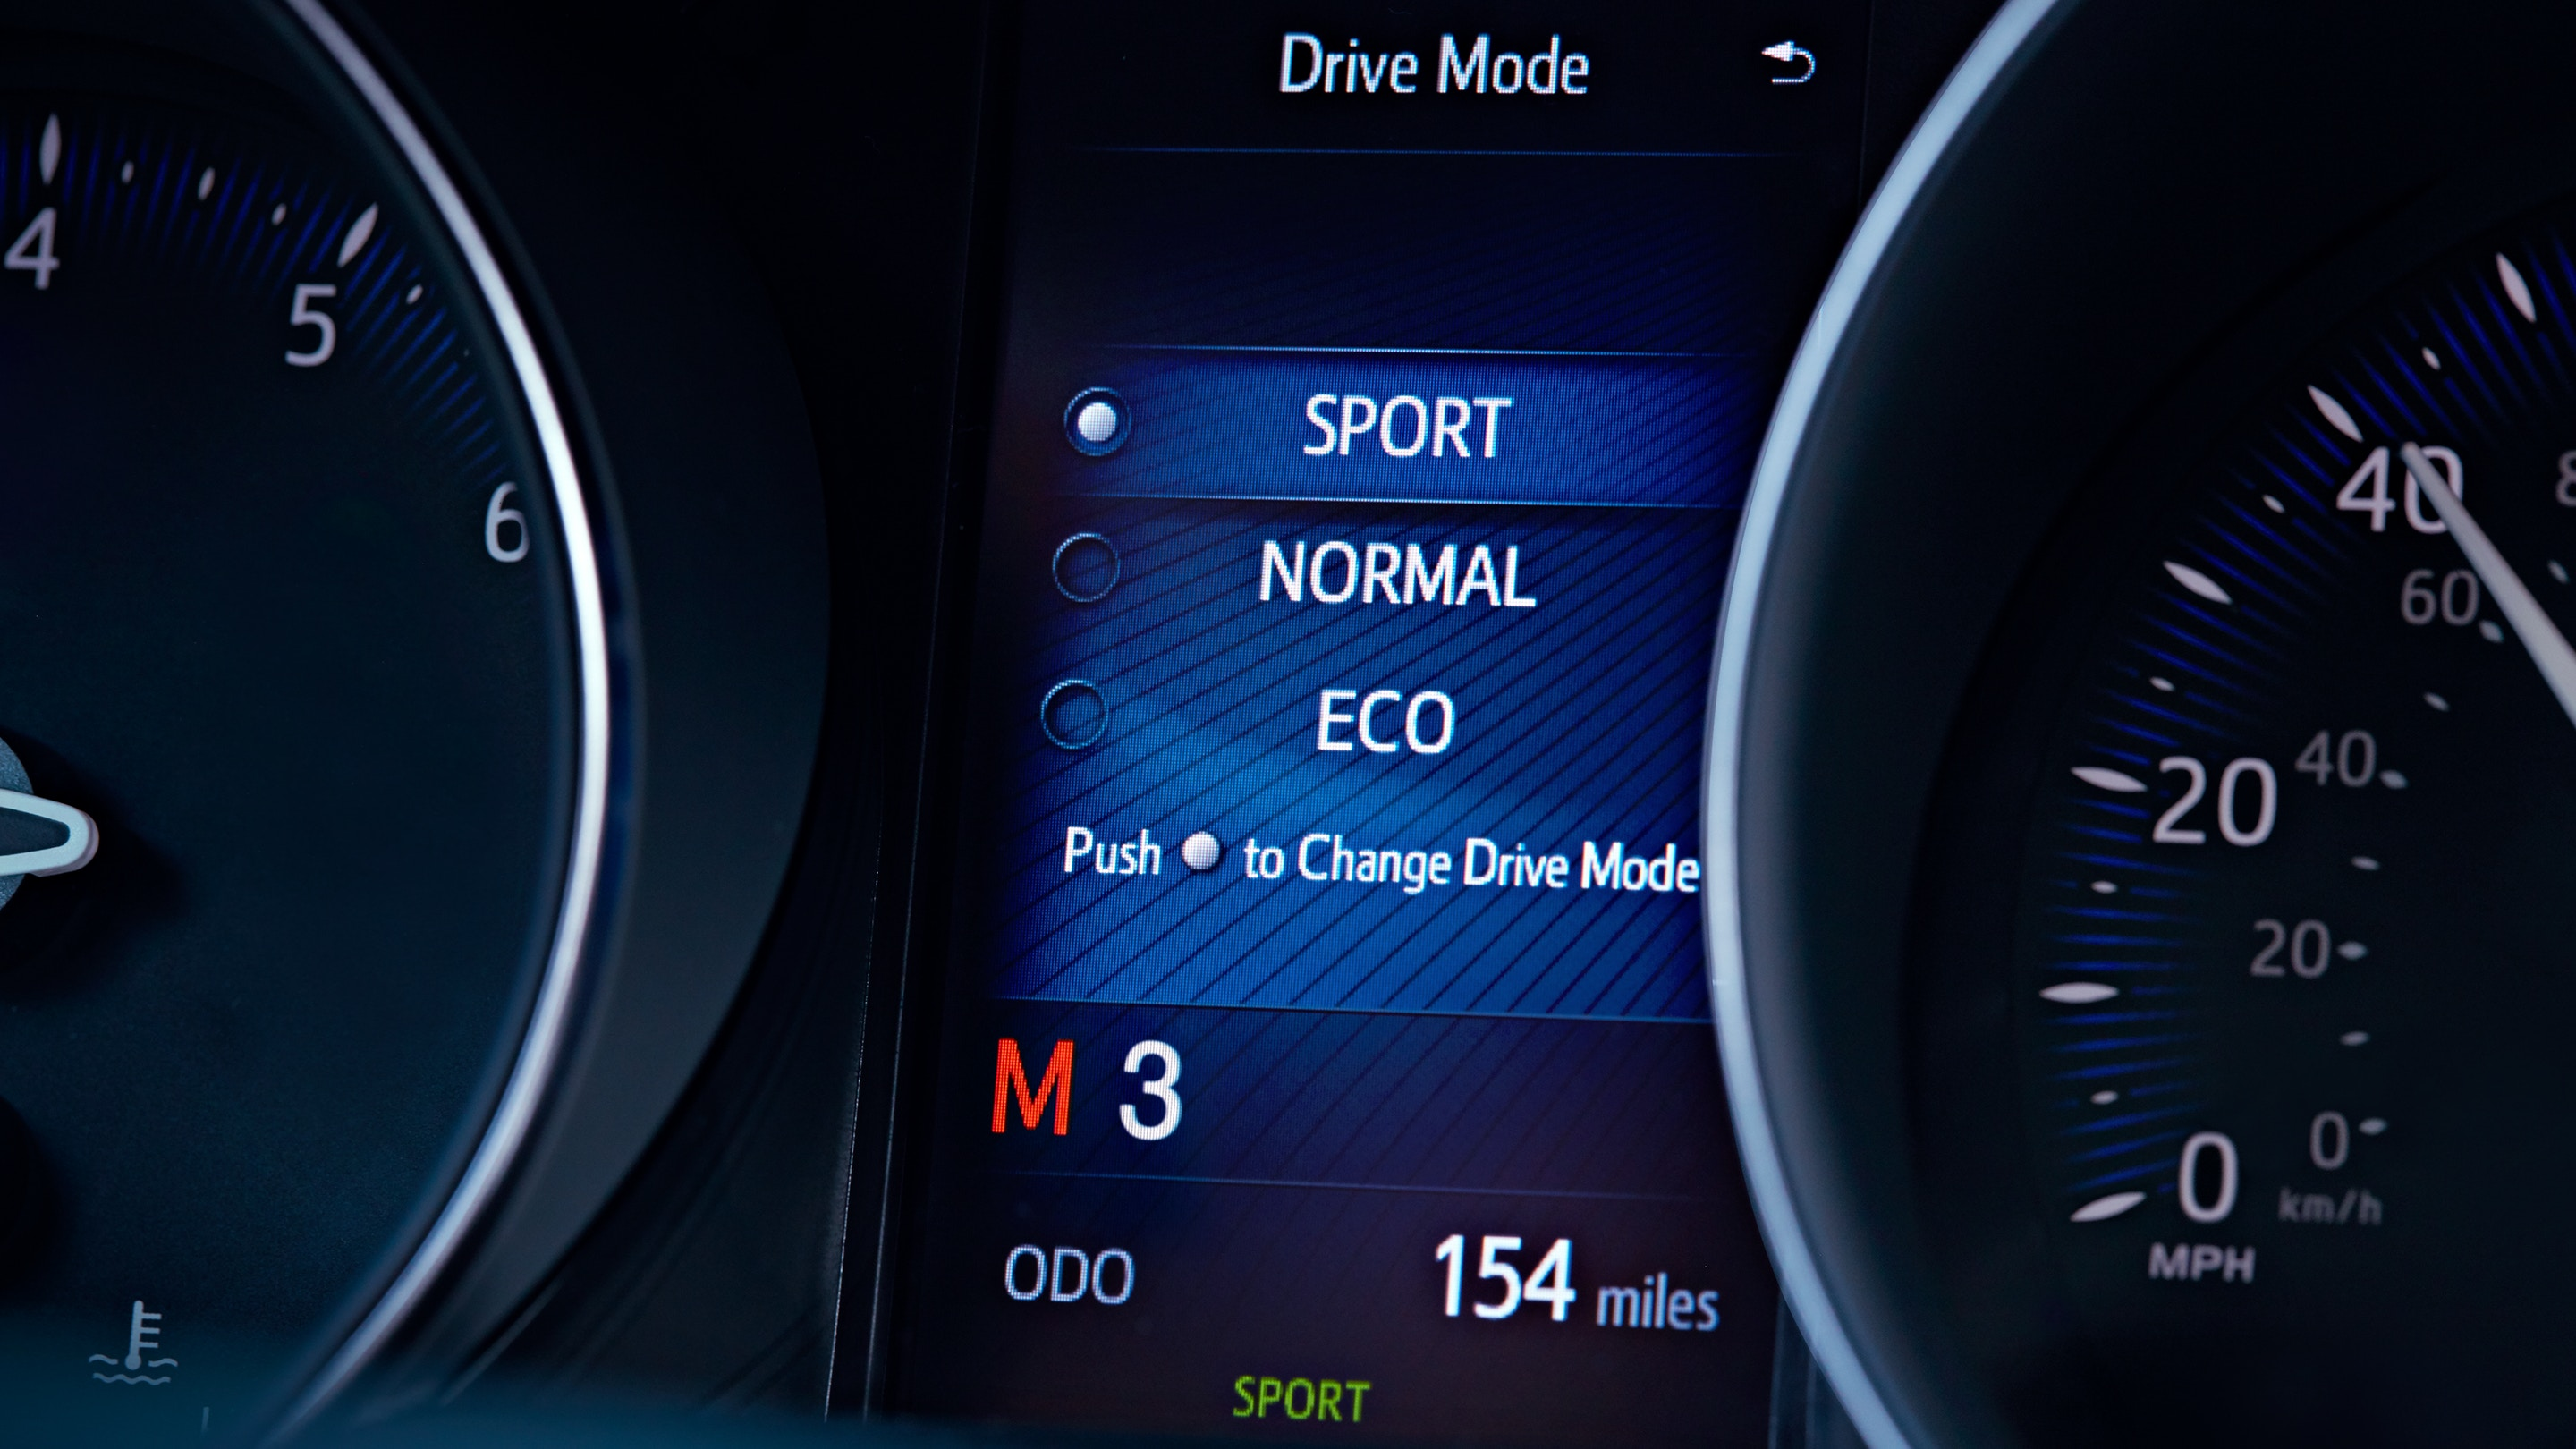 Drive Modes in the 2020 Toyota C-HR